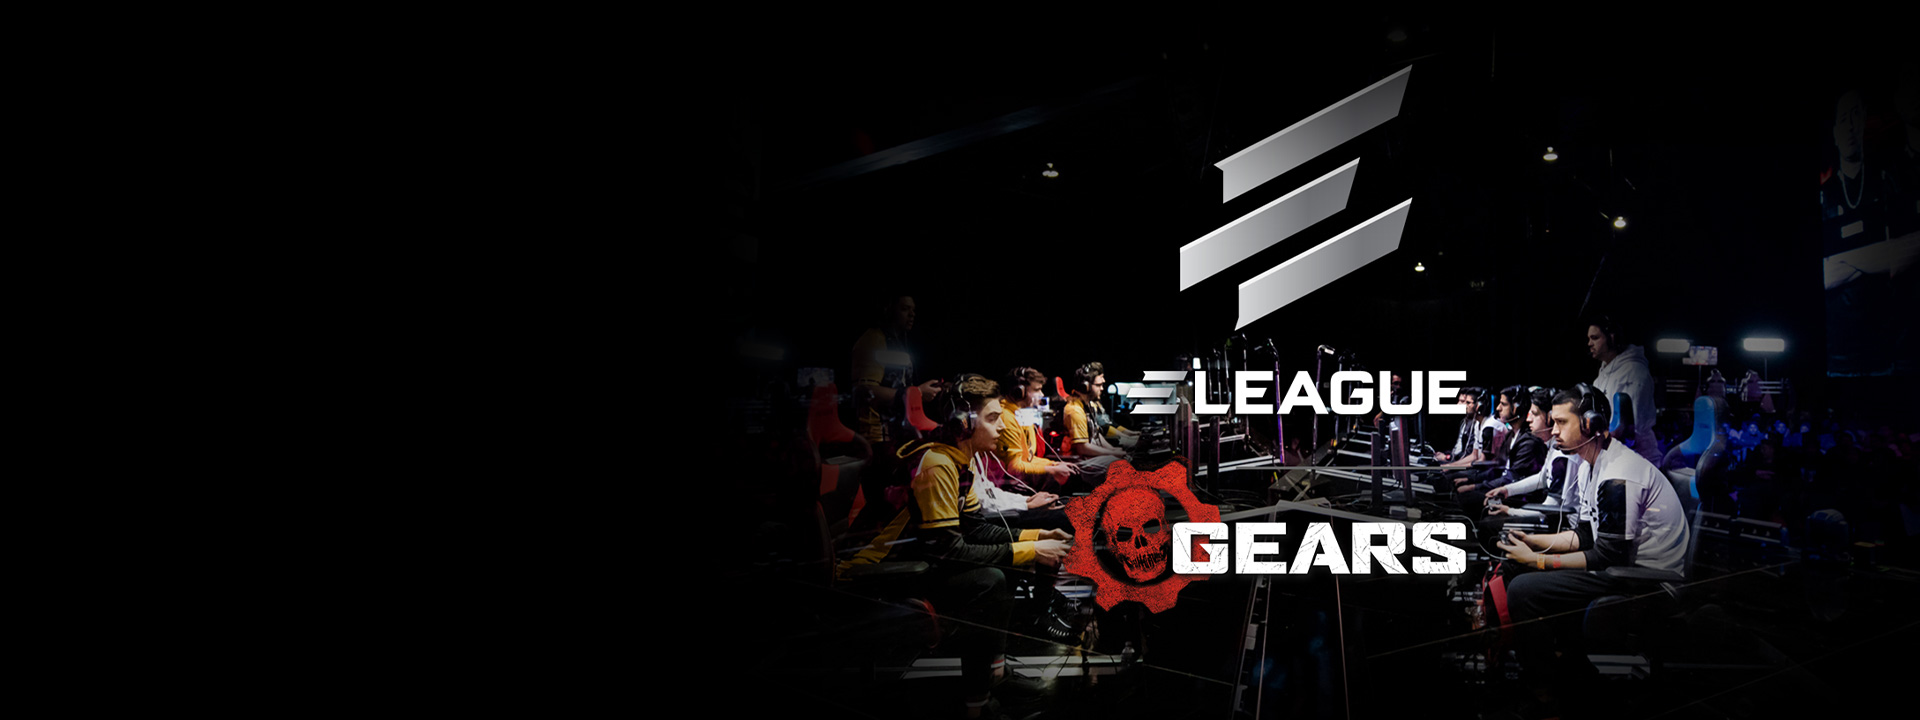 Logo reading E-league Gears over a photo of two rows of gamers at a Gears esports event